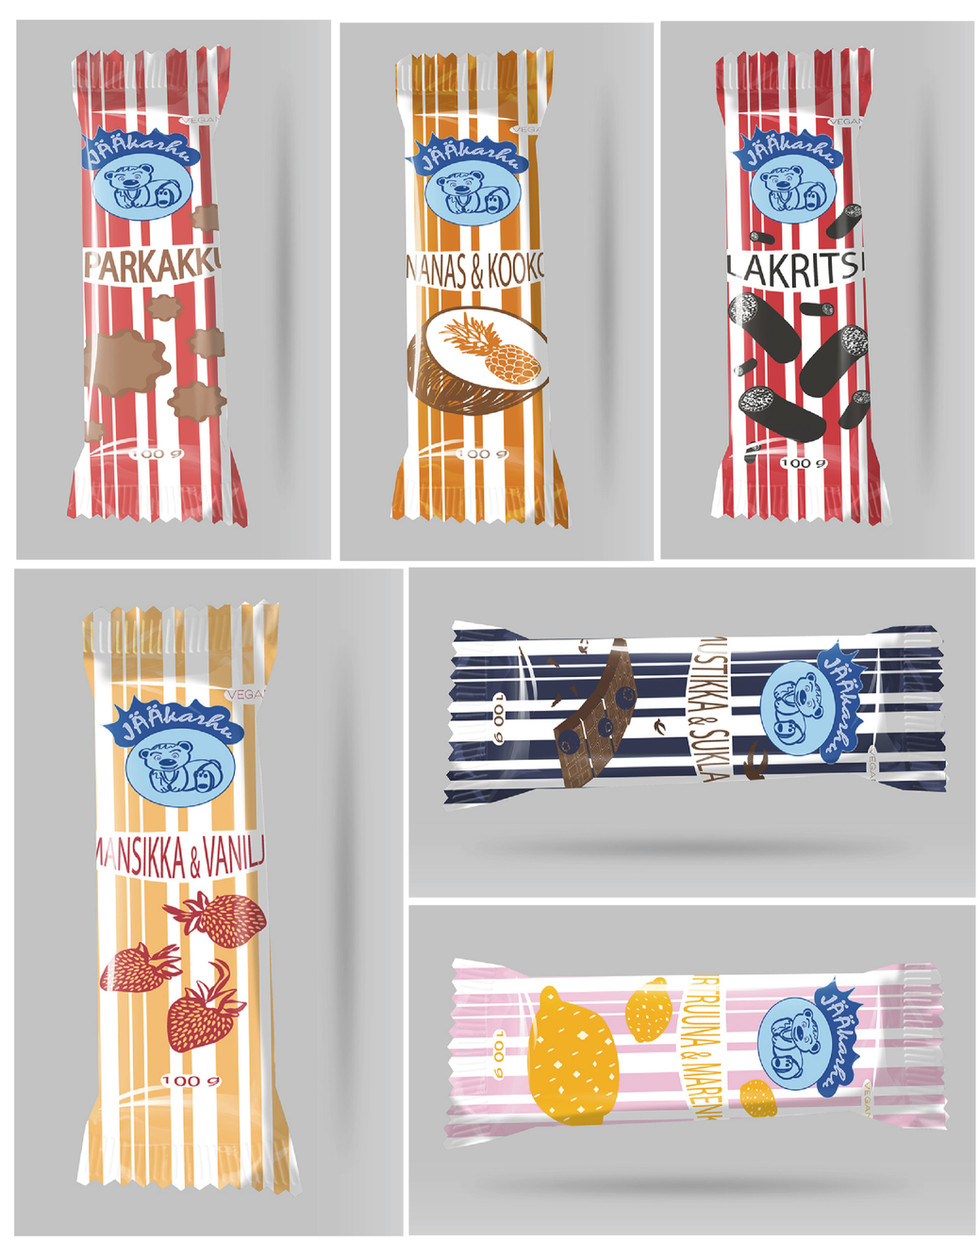 Design individual packages for 6 different flavors